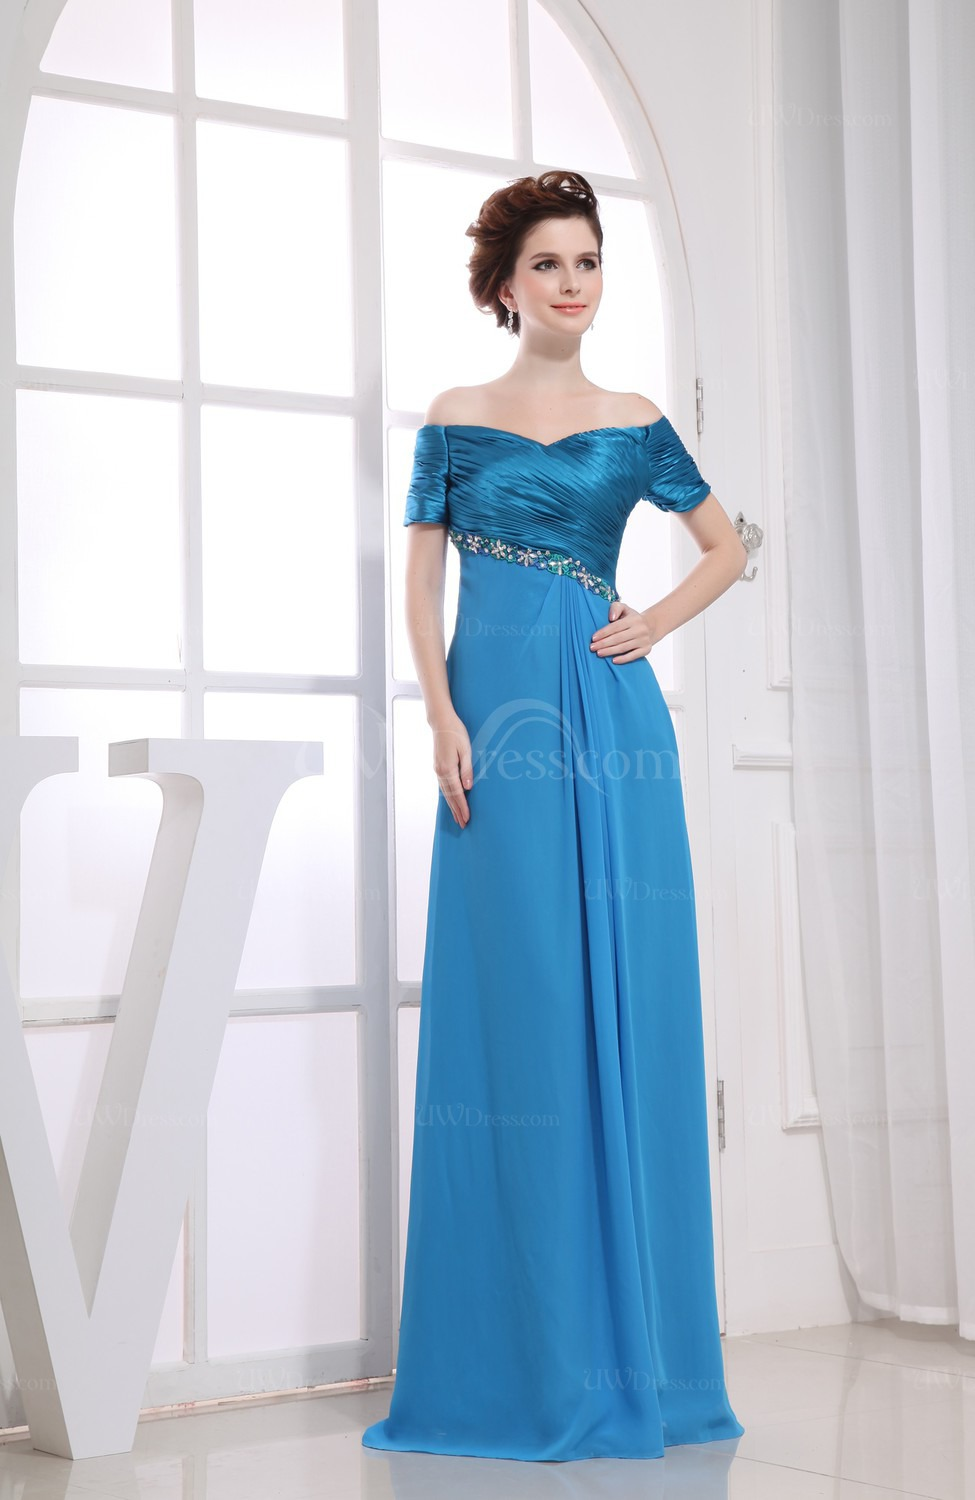 Royal blue bridesmaid dresses with sleeves 2014 2015 for Blue wedding dress with sleeves